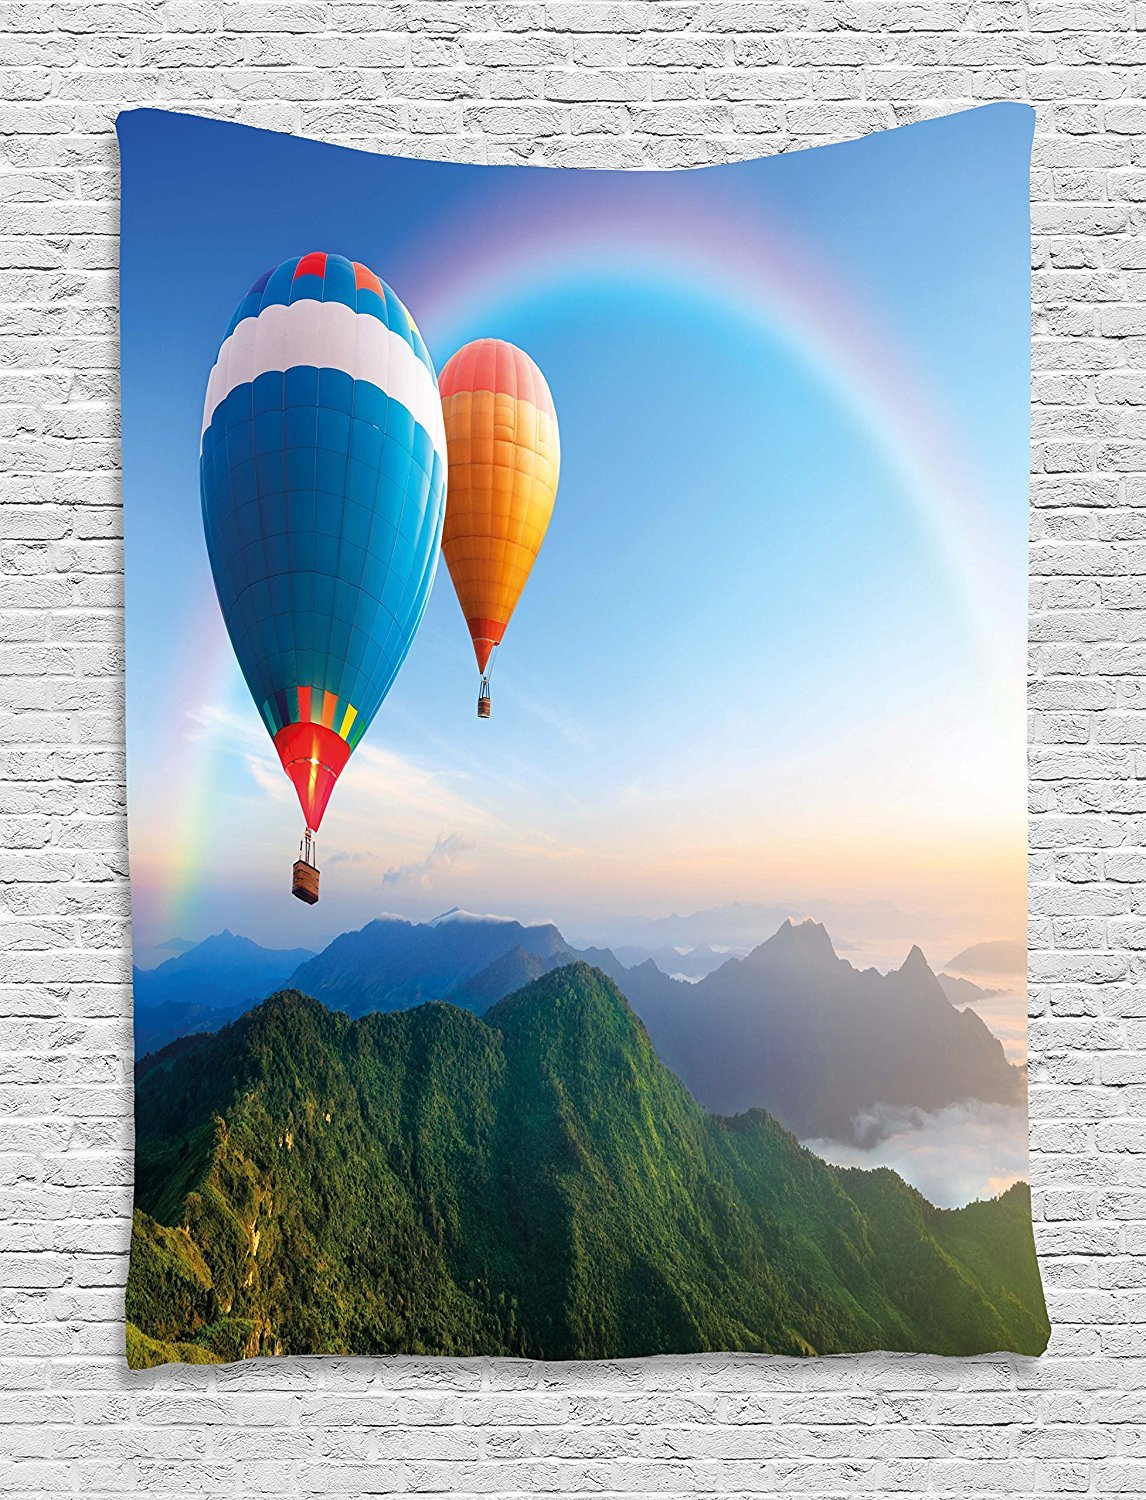 asddcdfdd Rainbow Tapestry, Hot Air Balloon Flying Lovely Mountain Side with Clear Sky and Rainbow, Wall Hanging for Bedroom Living Room Dorm, 60 W X 80 L Inches, Sky Blue Multicolor